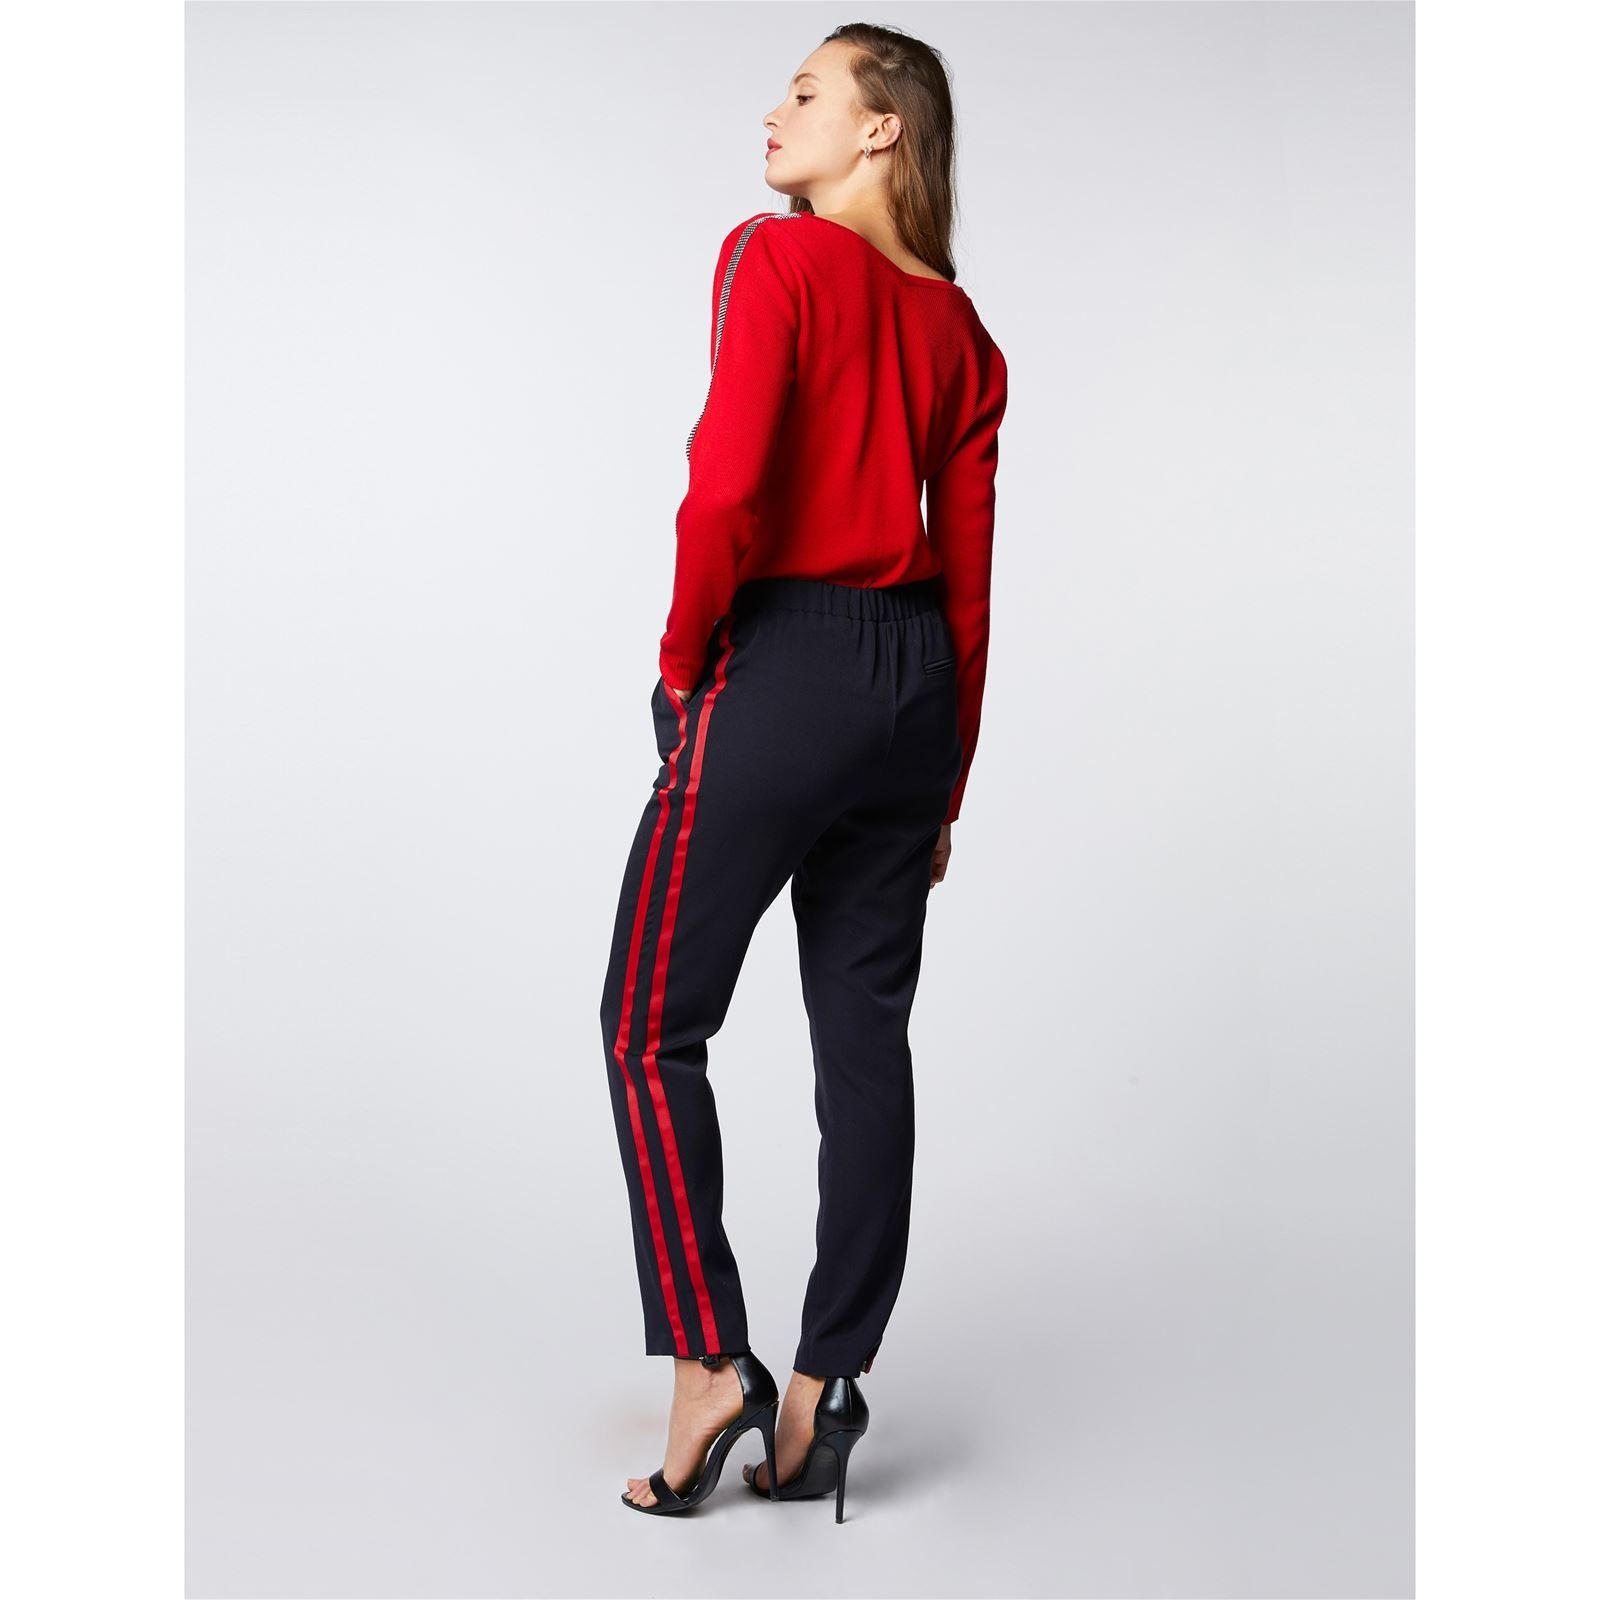 V Sur Brandalley Avec Pull Morgan Strass Rouge Col Manche 1TUwxqvX